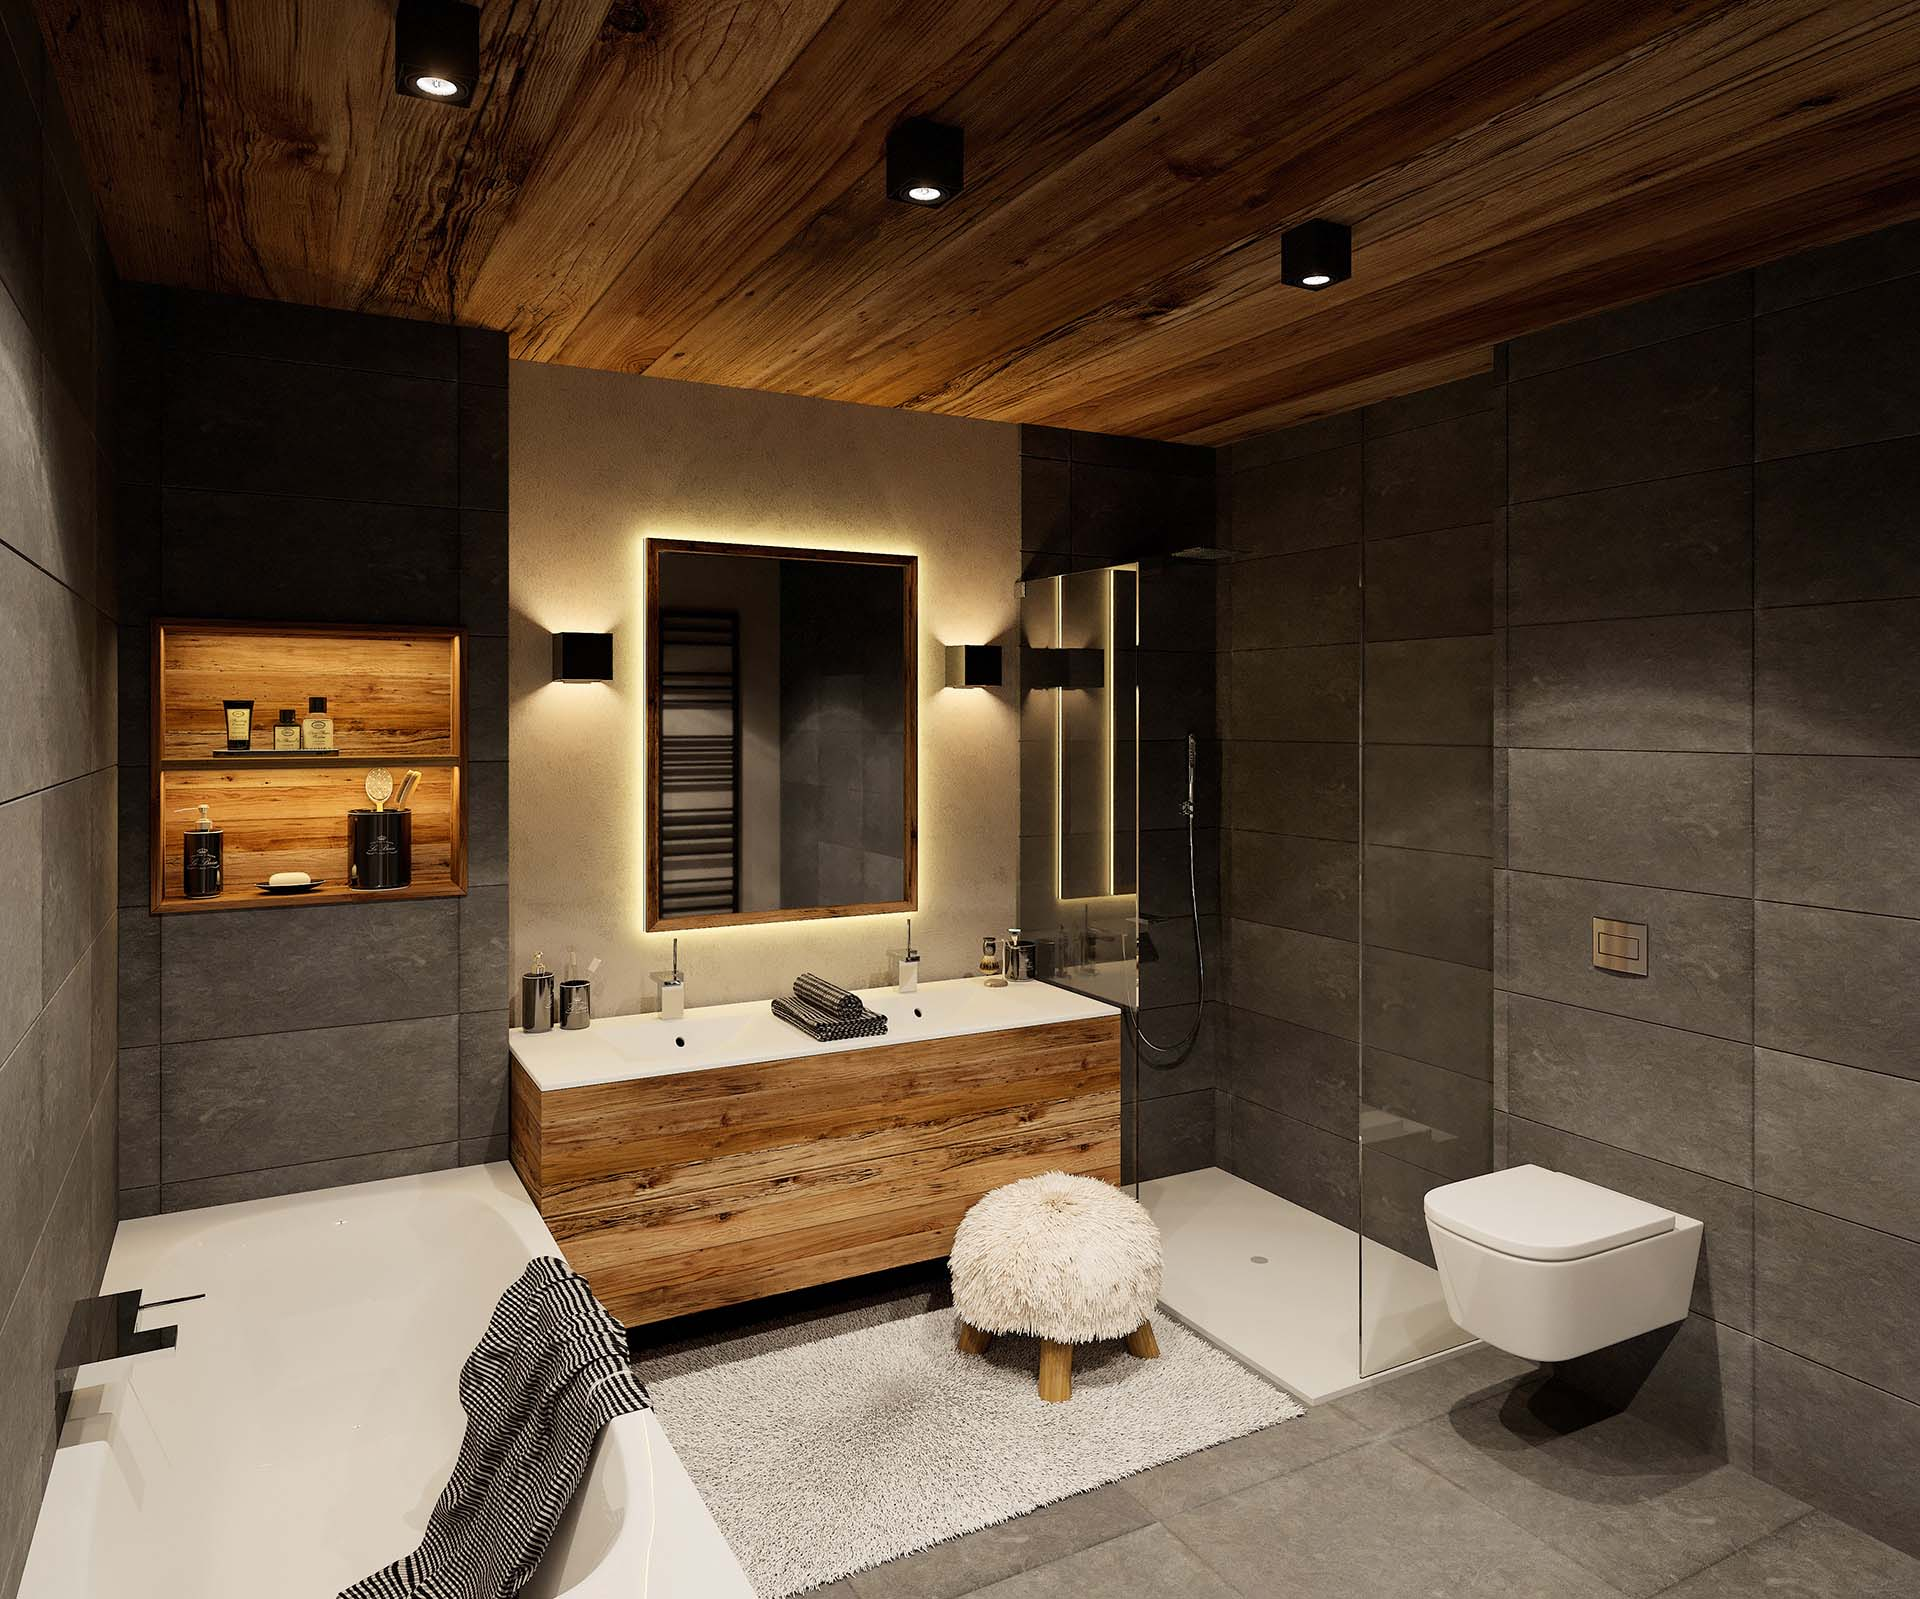 Creation of a 3D perspective of a bathroom for real estate promotion.